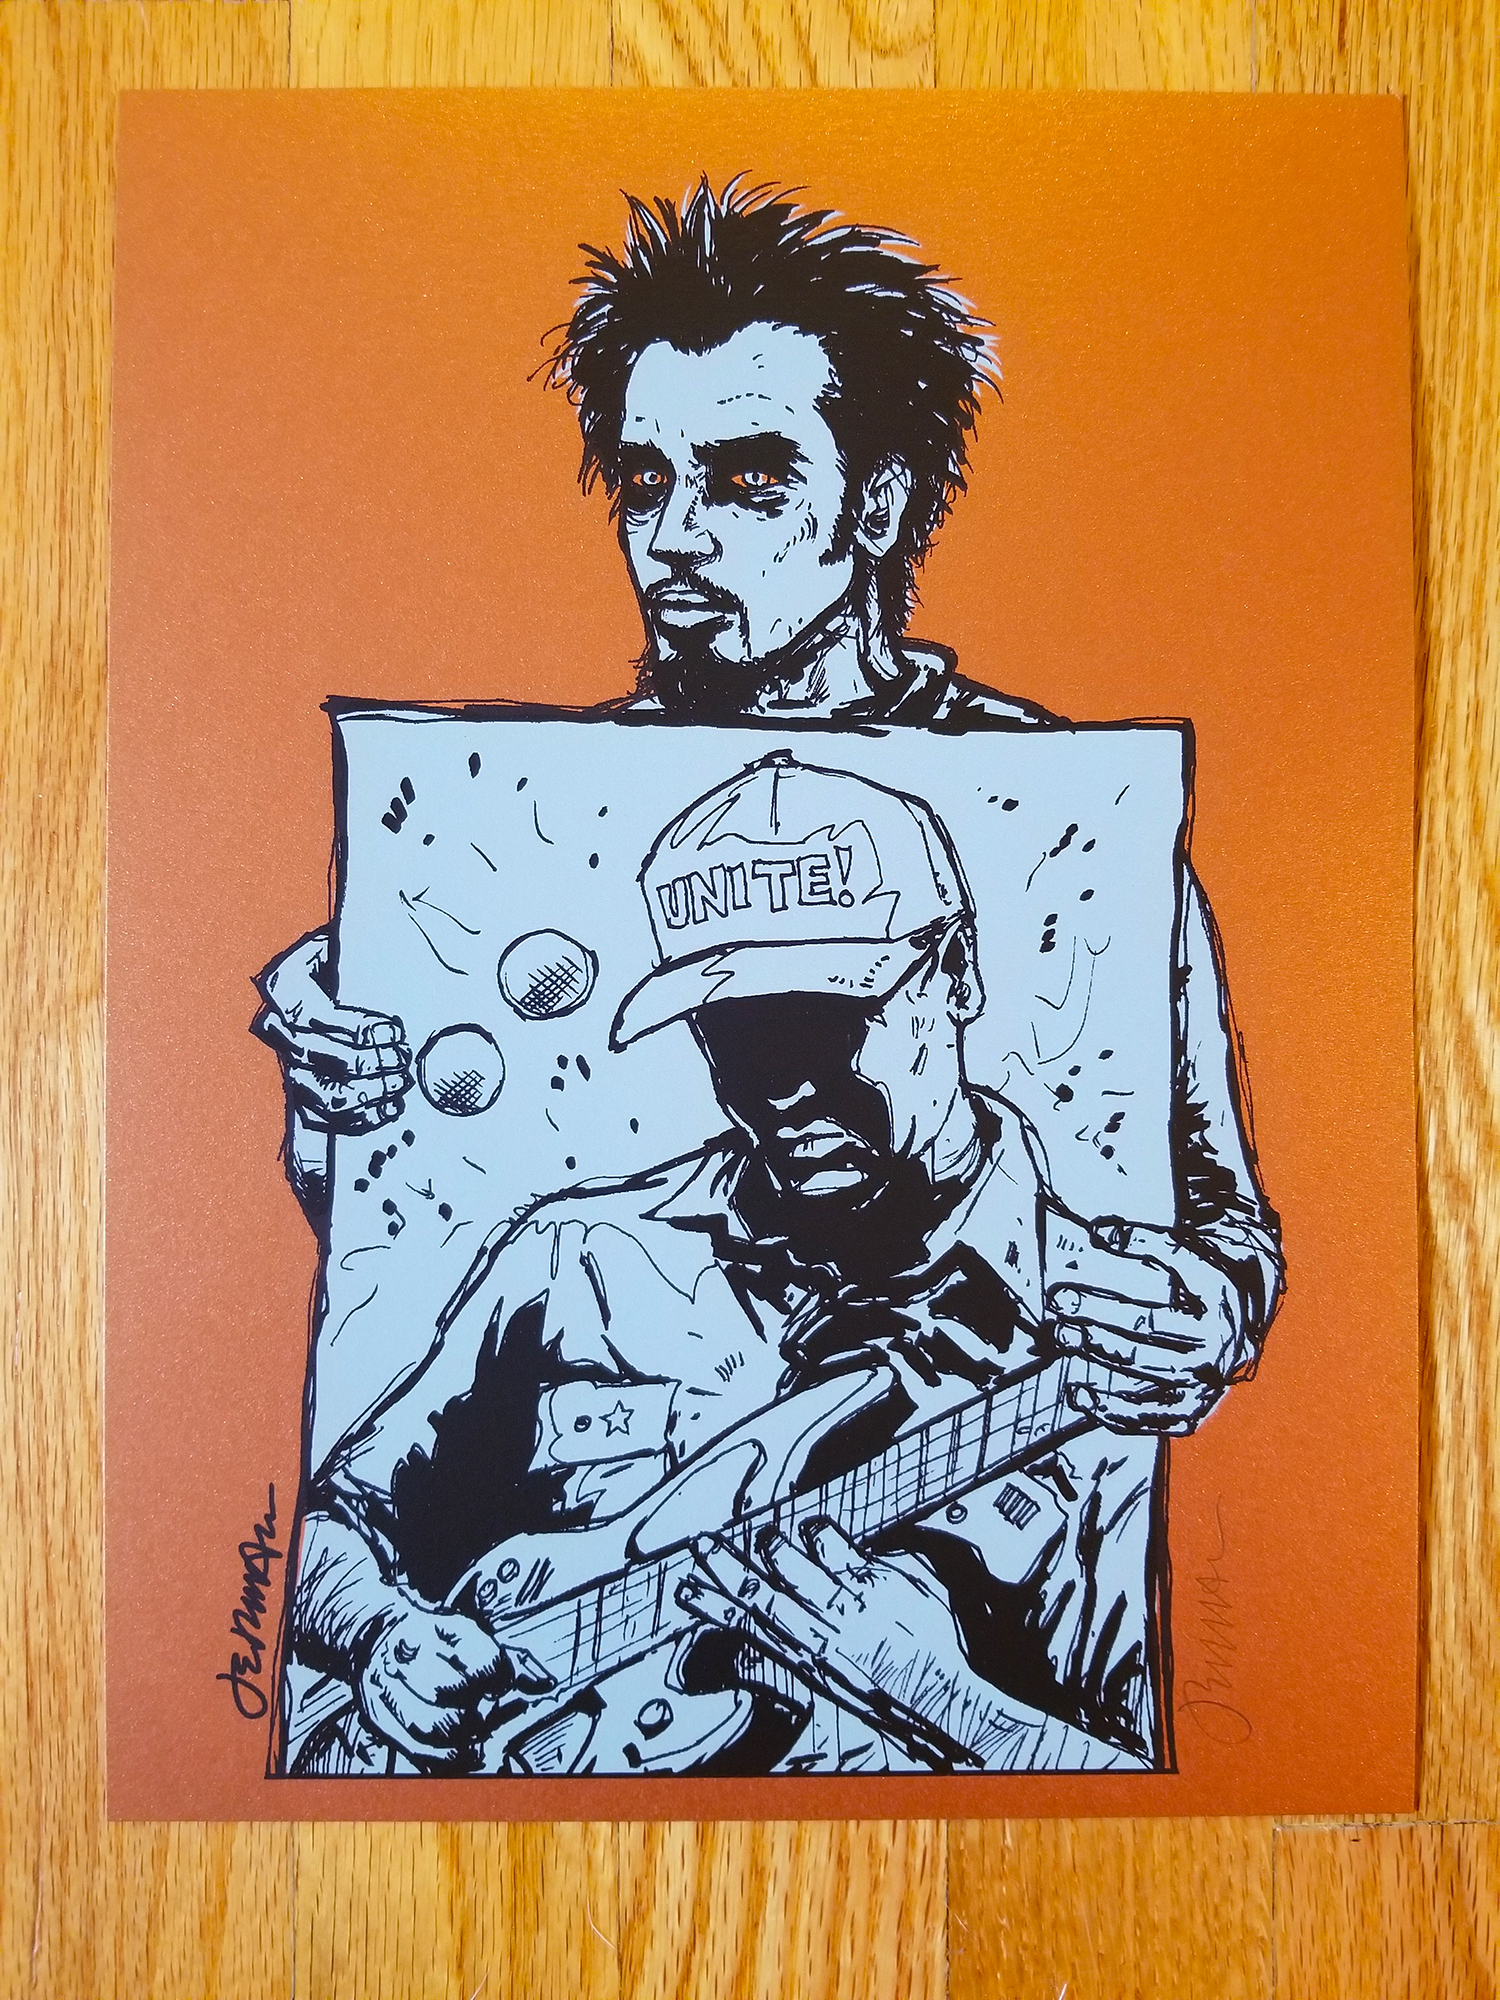 NEW - 'Slaves' (Chris Cornell / Tom Morello / Audioslave) Mini Art Print (STARDREAM GOLD)